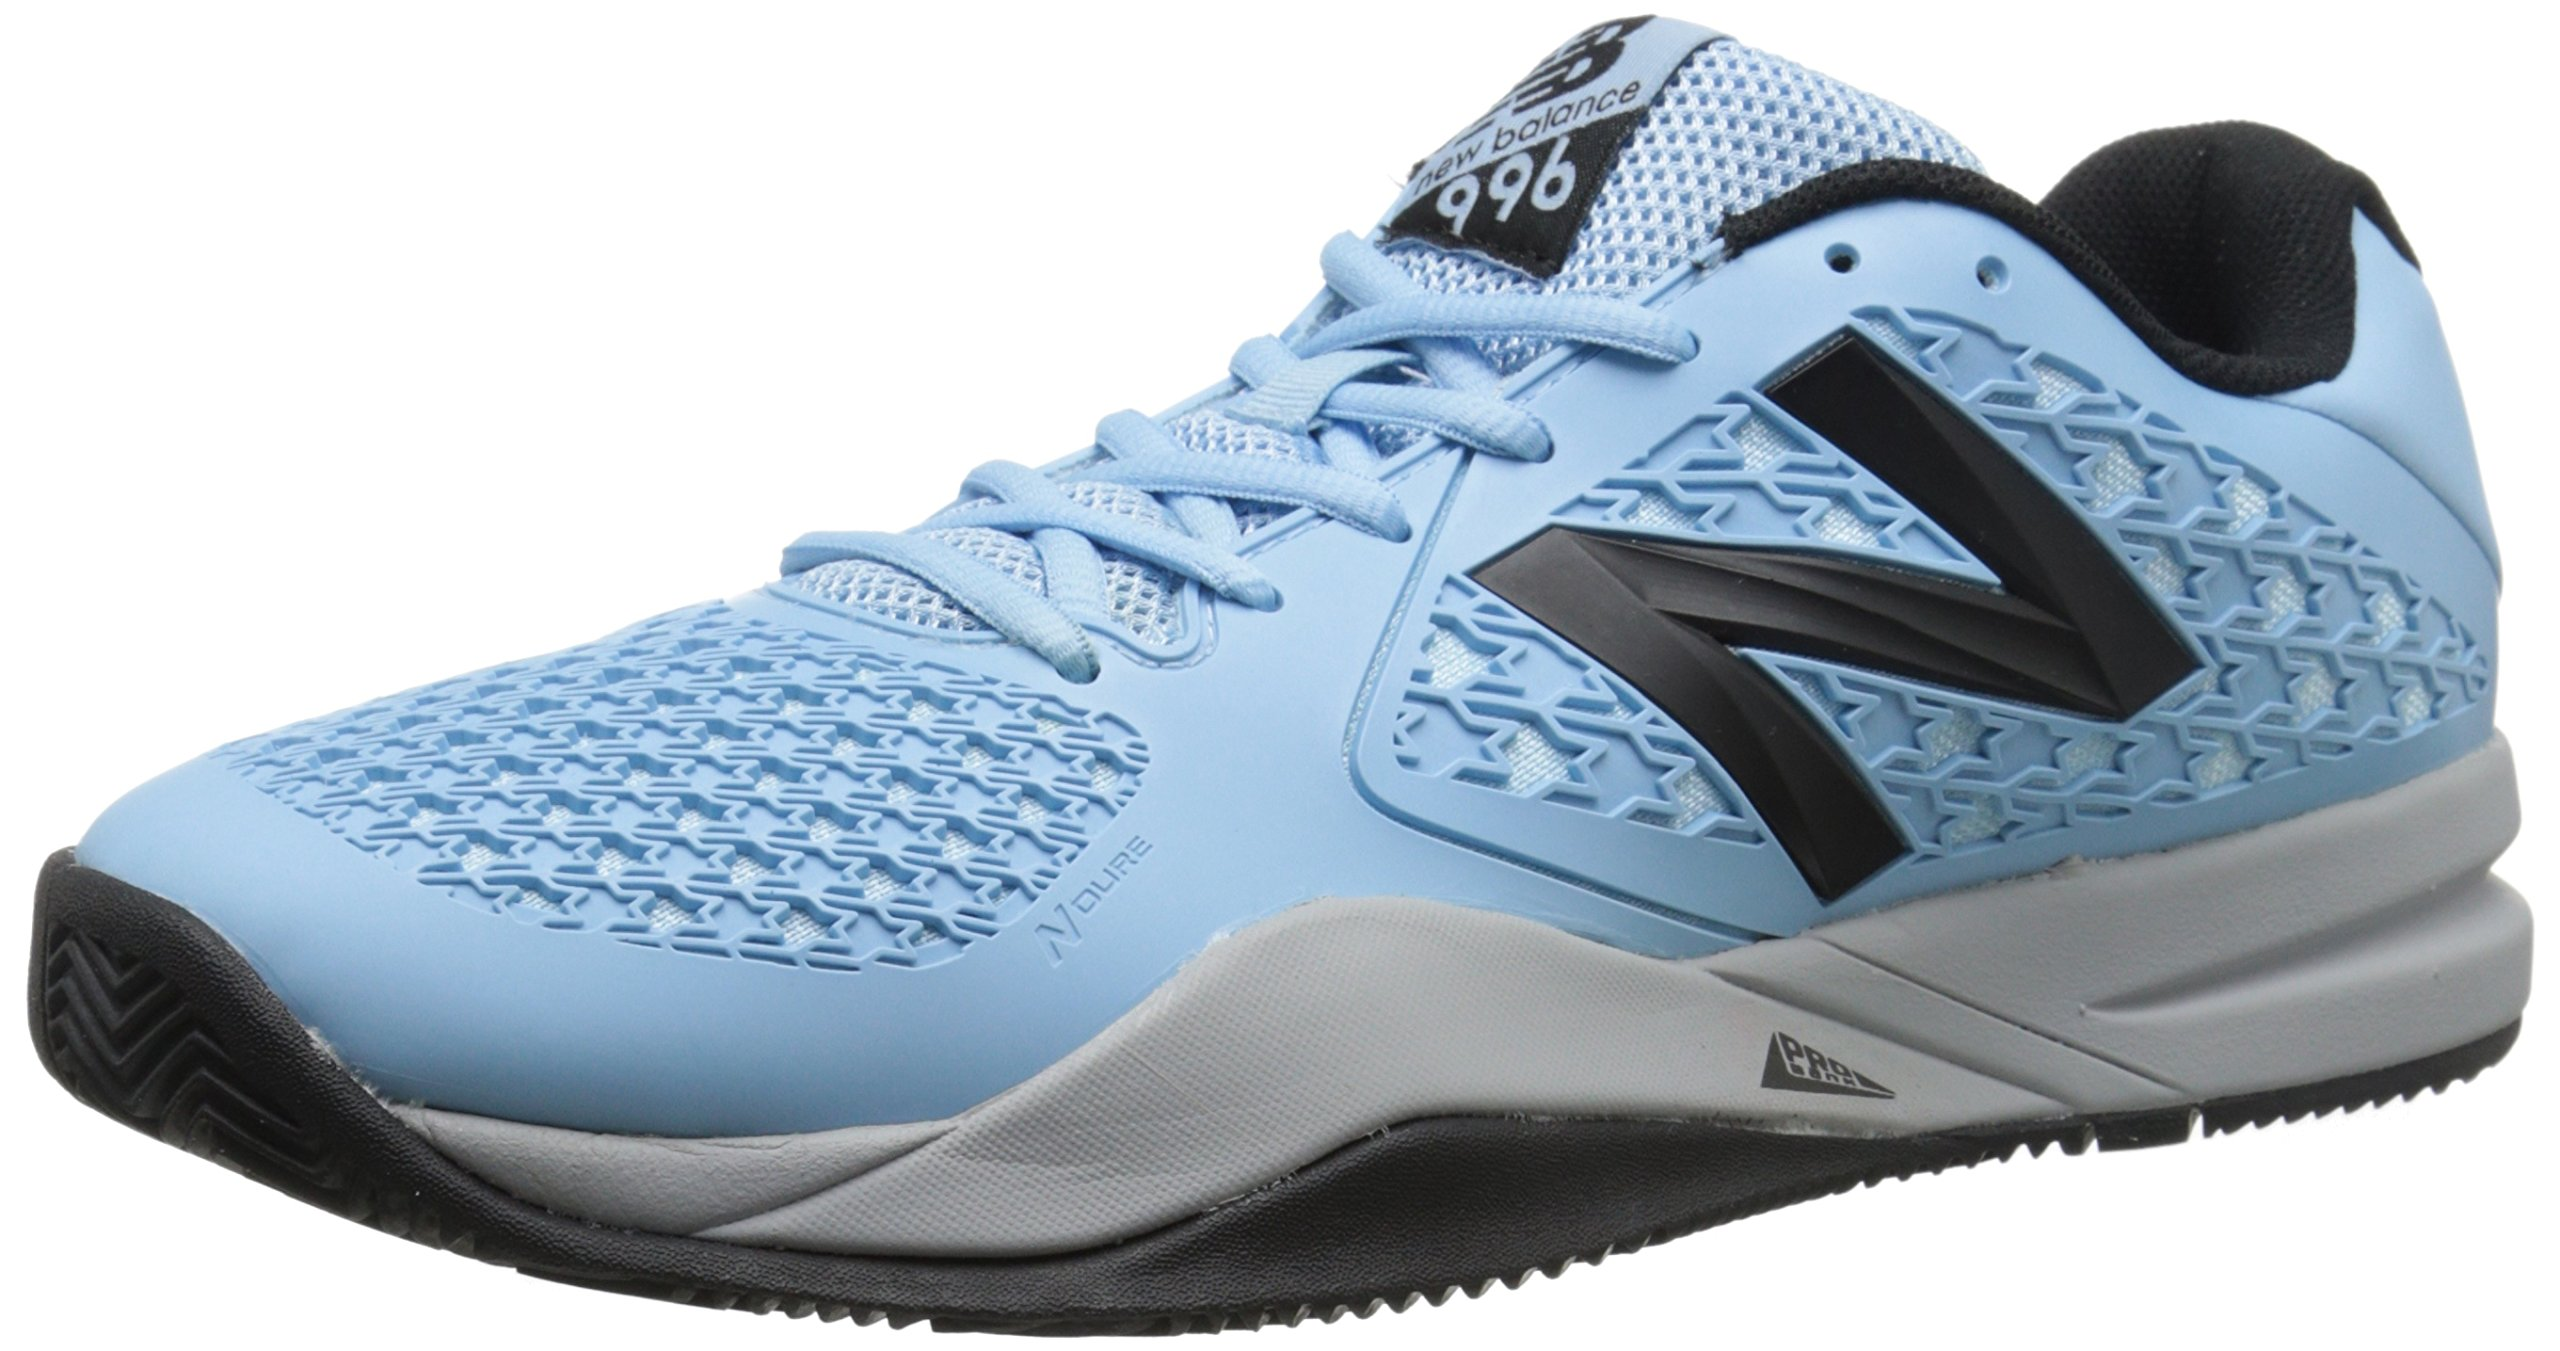 new arrival 97f68 aacb8 Galleon - New Balance Men s MC996 Lightweight Tennis Shoe, Blue Black, 9 D  US